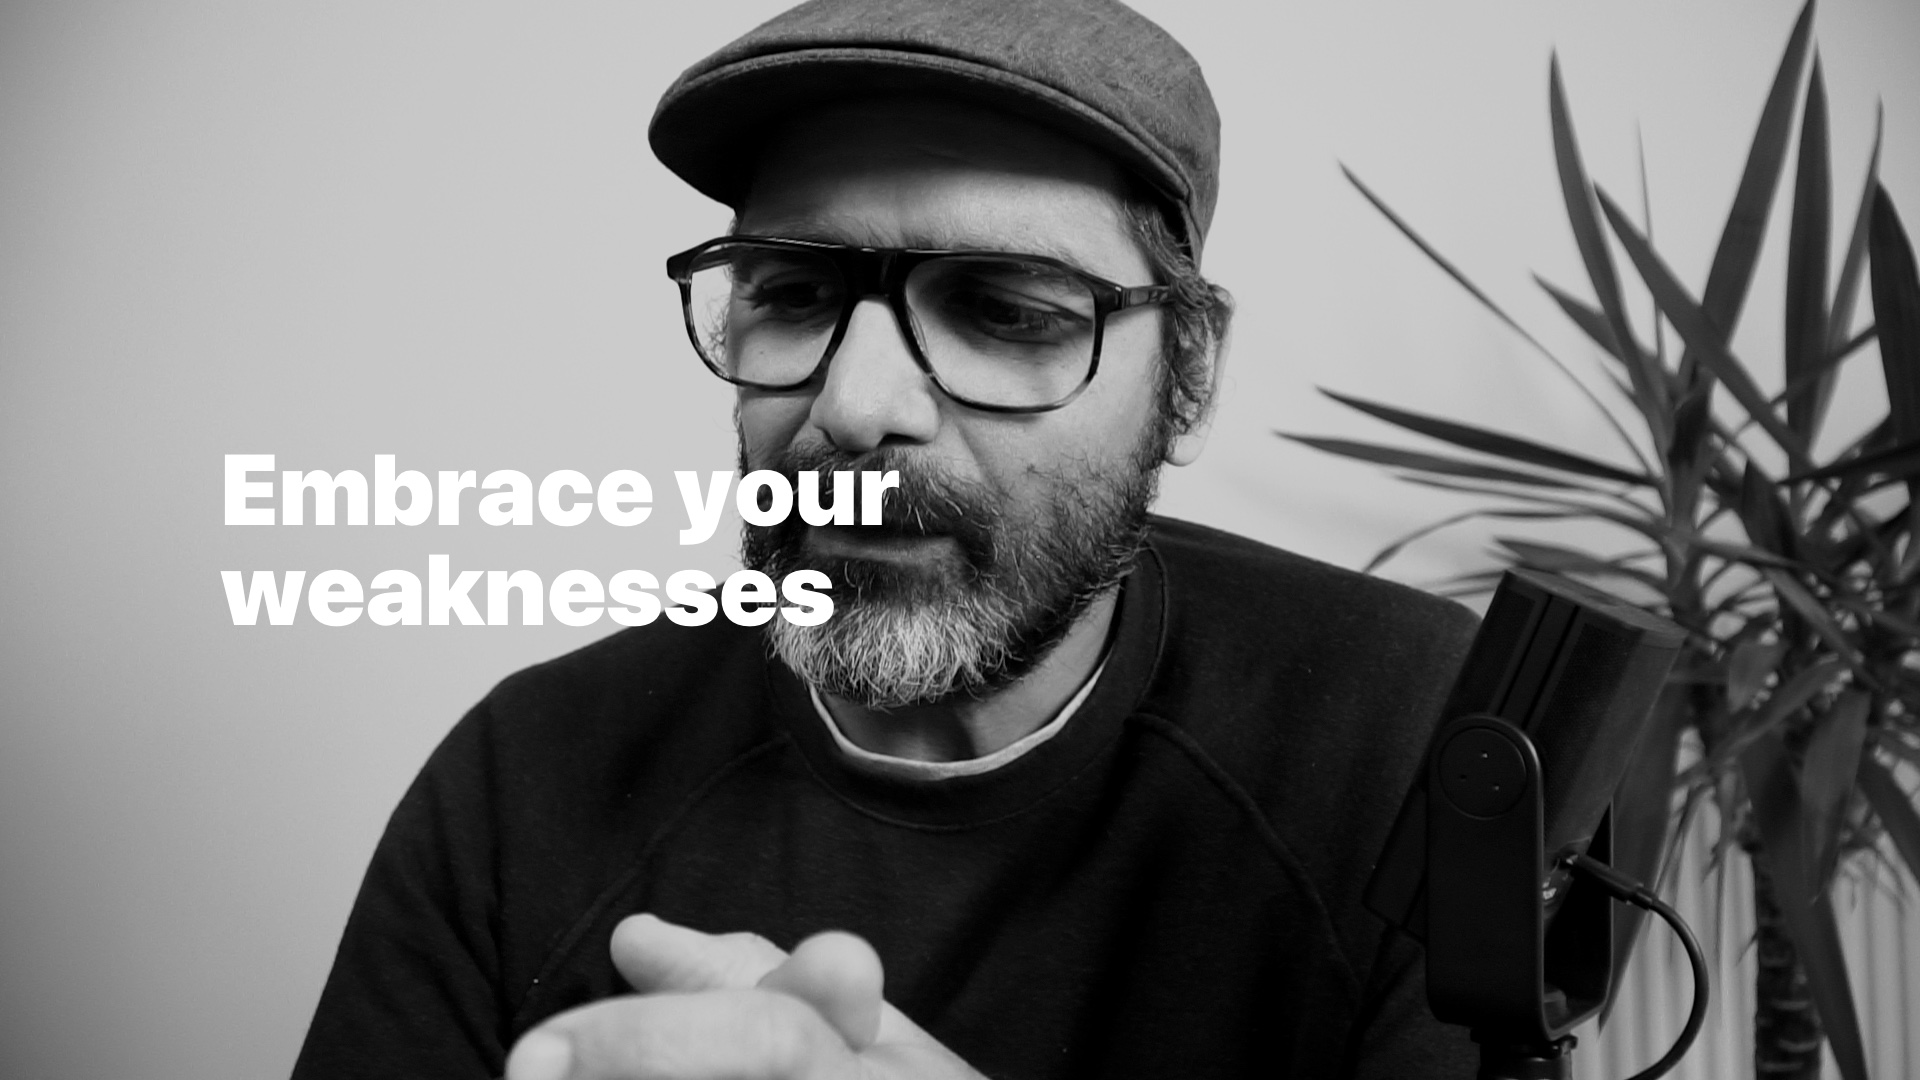 Embrace your weaknesses